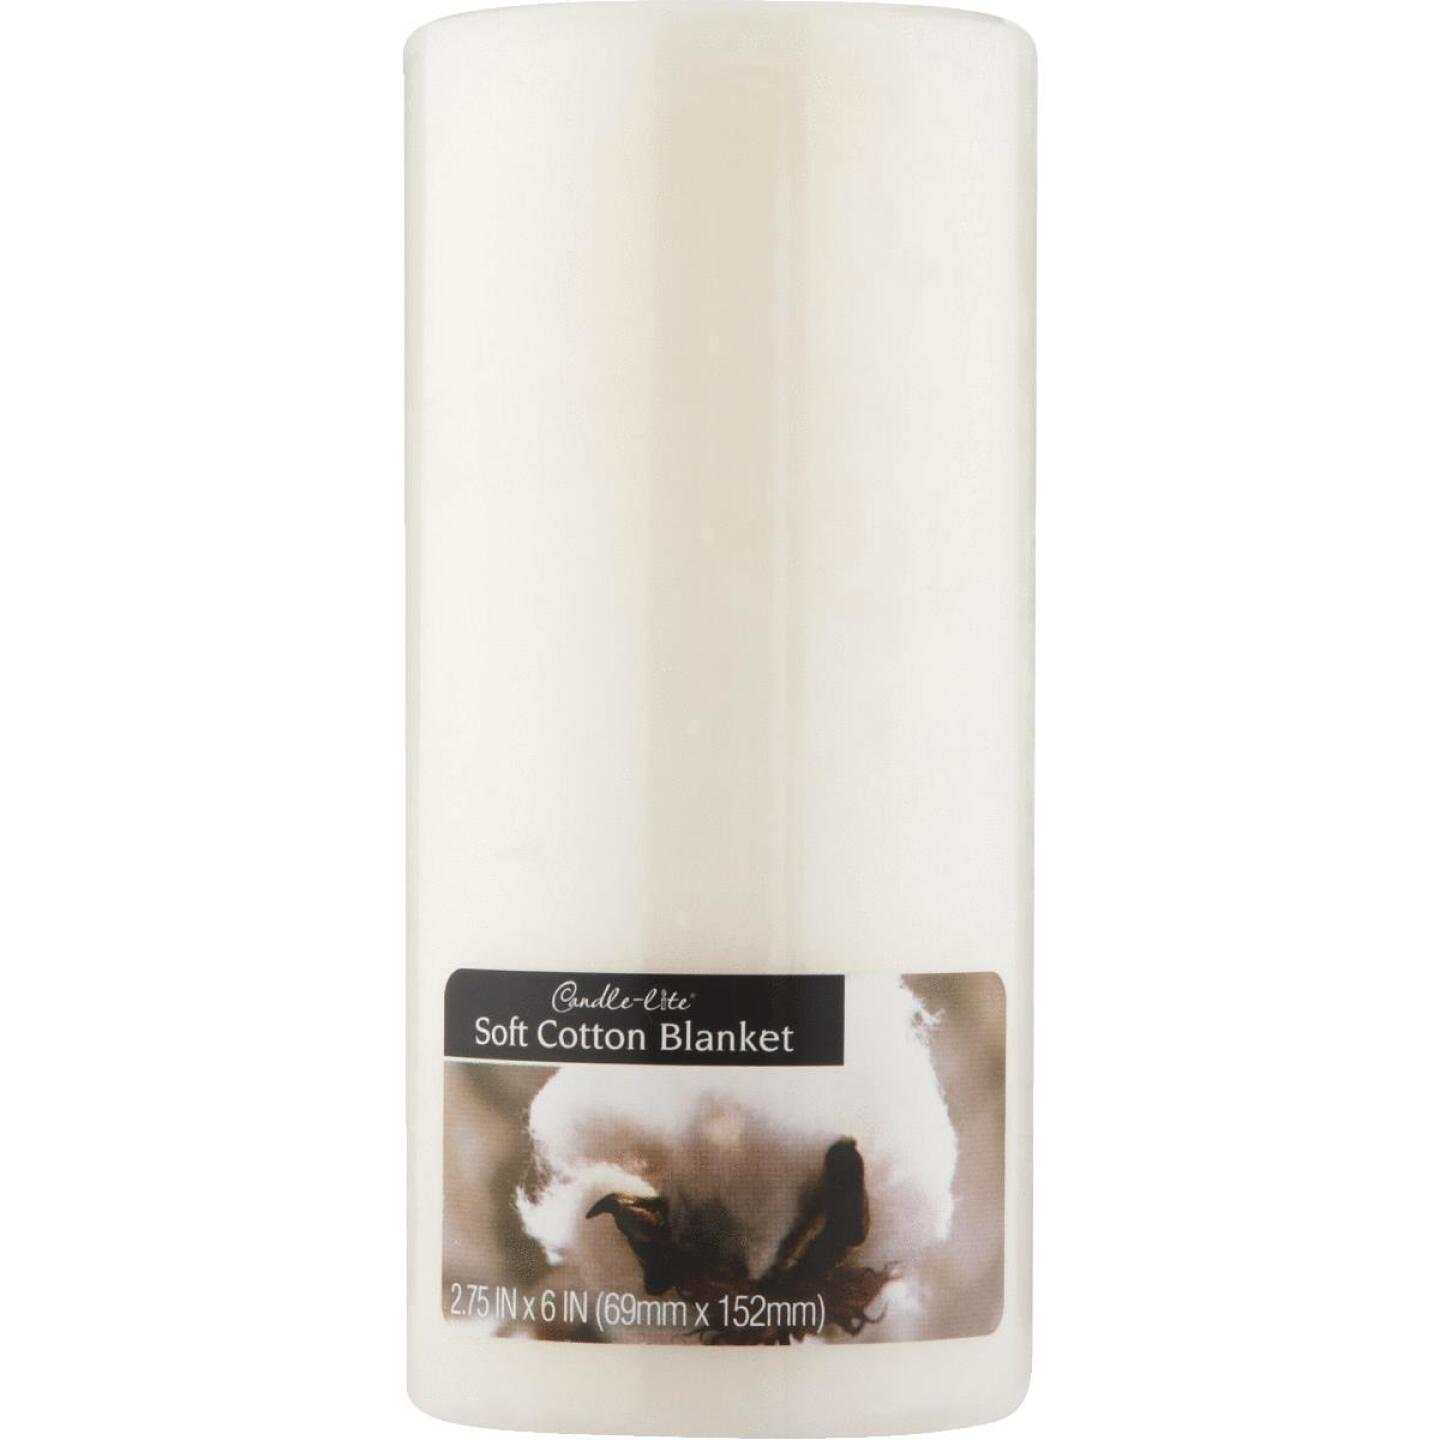 Candle-lite Soft Cotton Pillar Candle Image 1